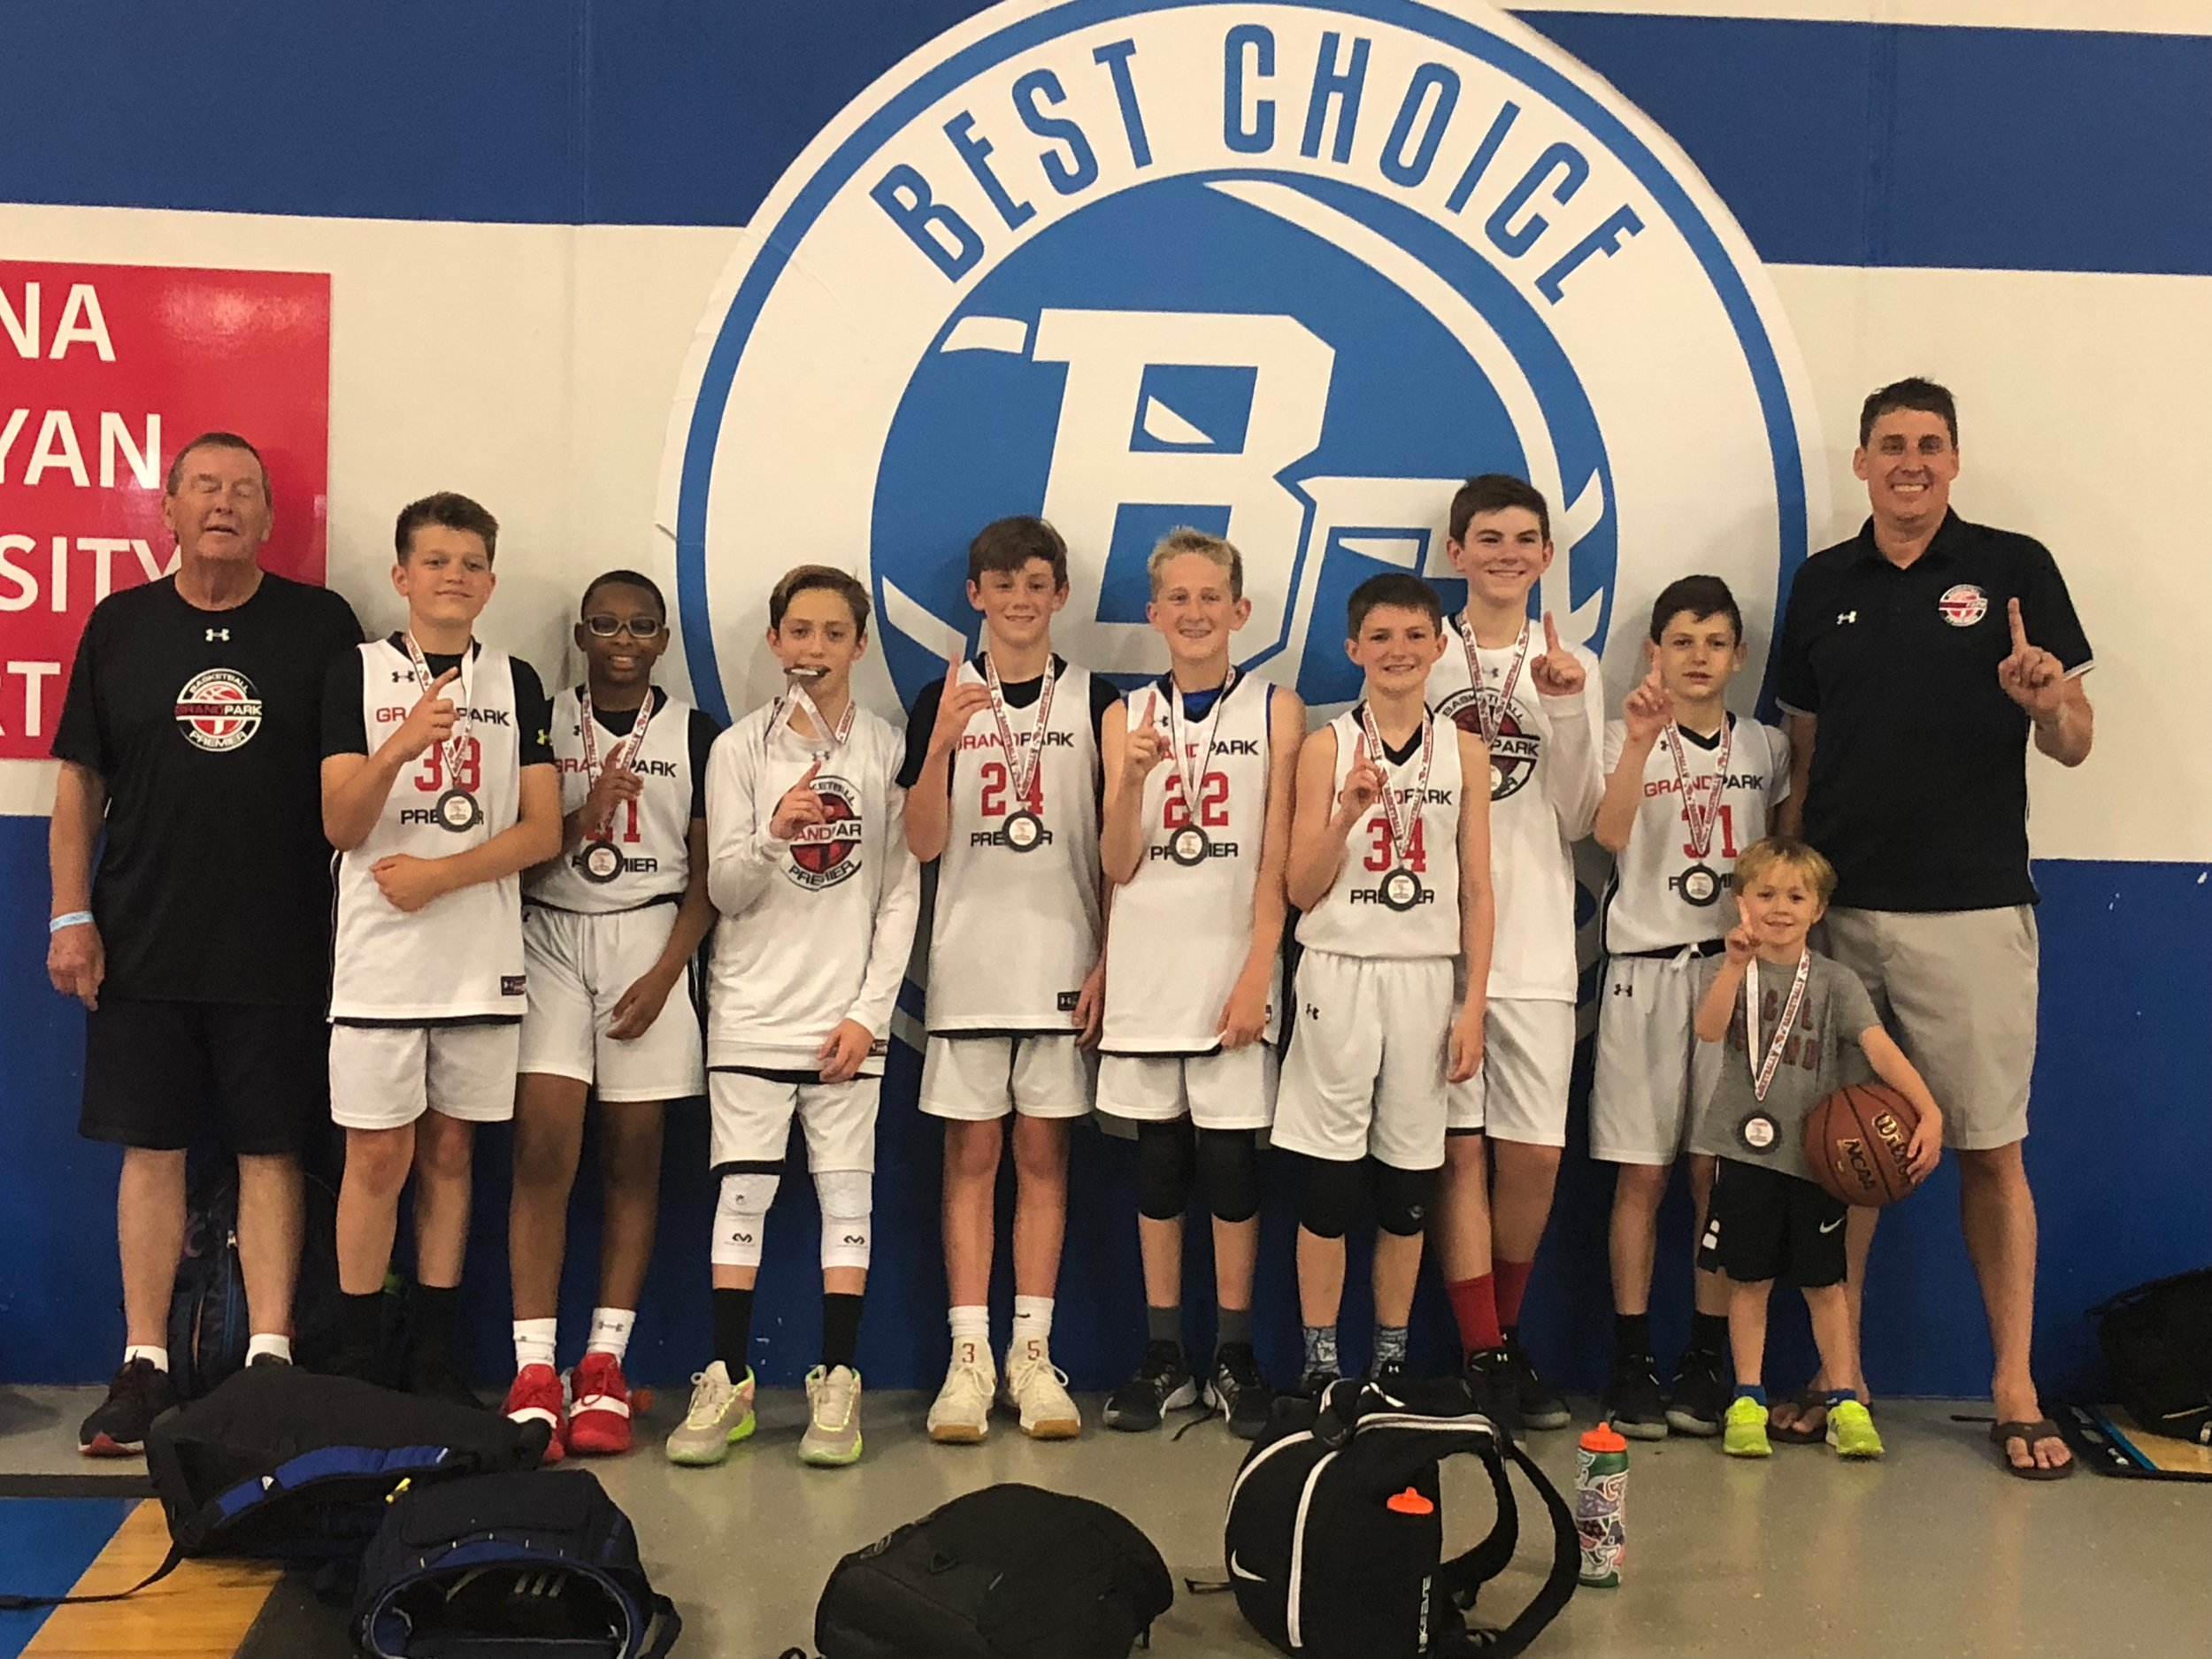 2019 Midwest Hoops Champions